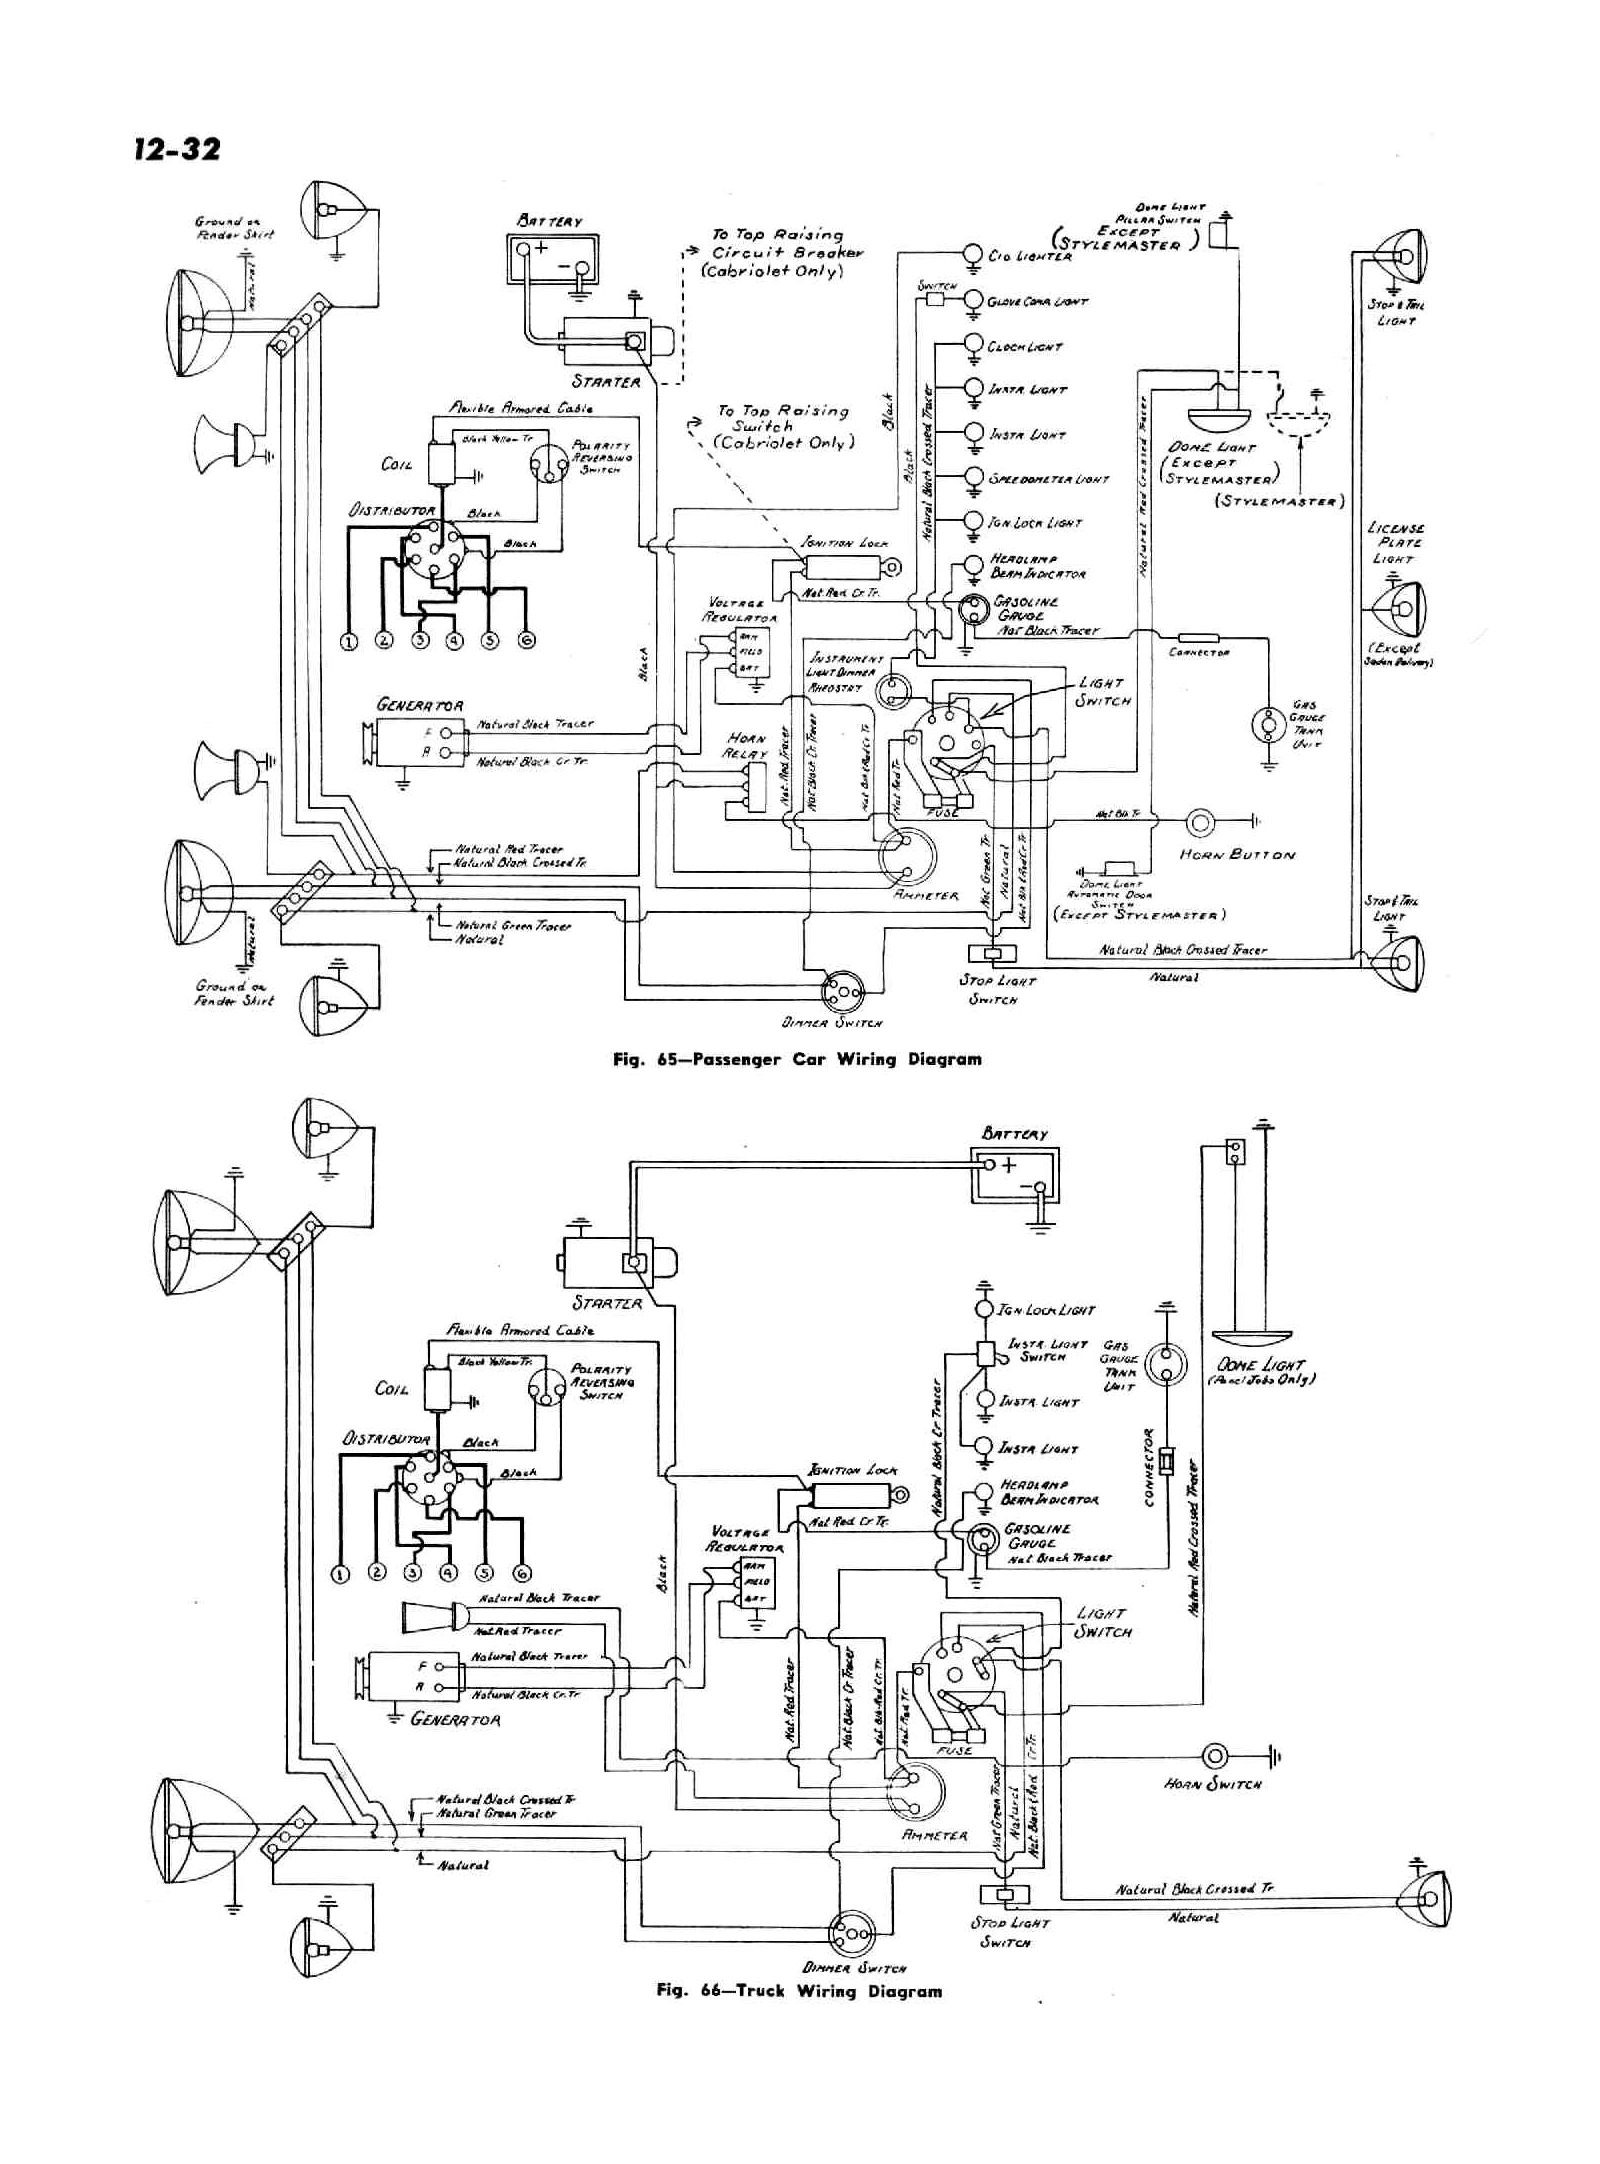 1959 Chevy Truck Wiring Diagram 1982 Chevrolet Diagrams For Of